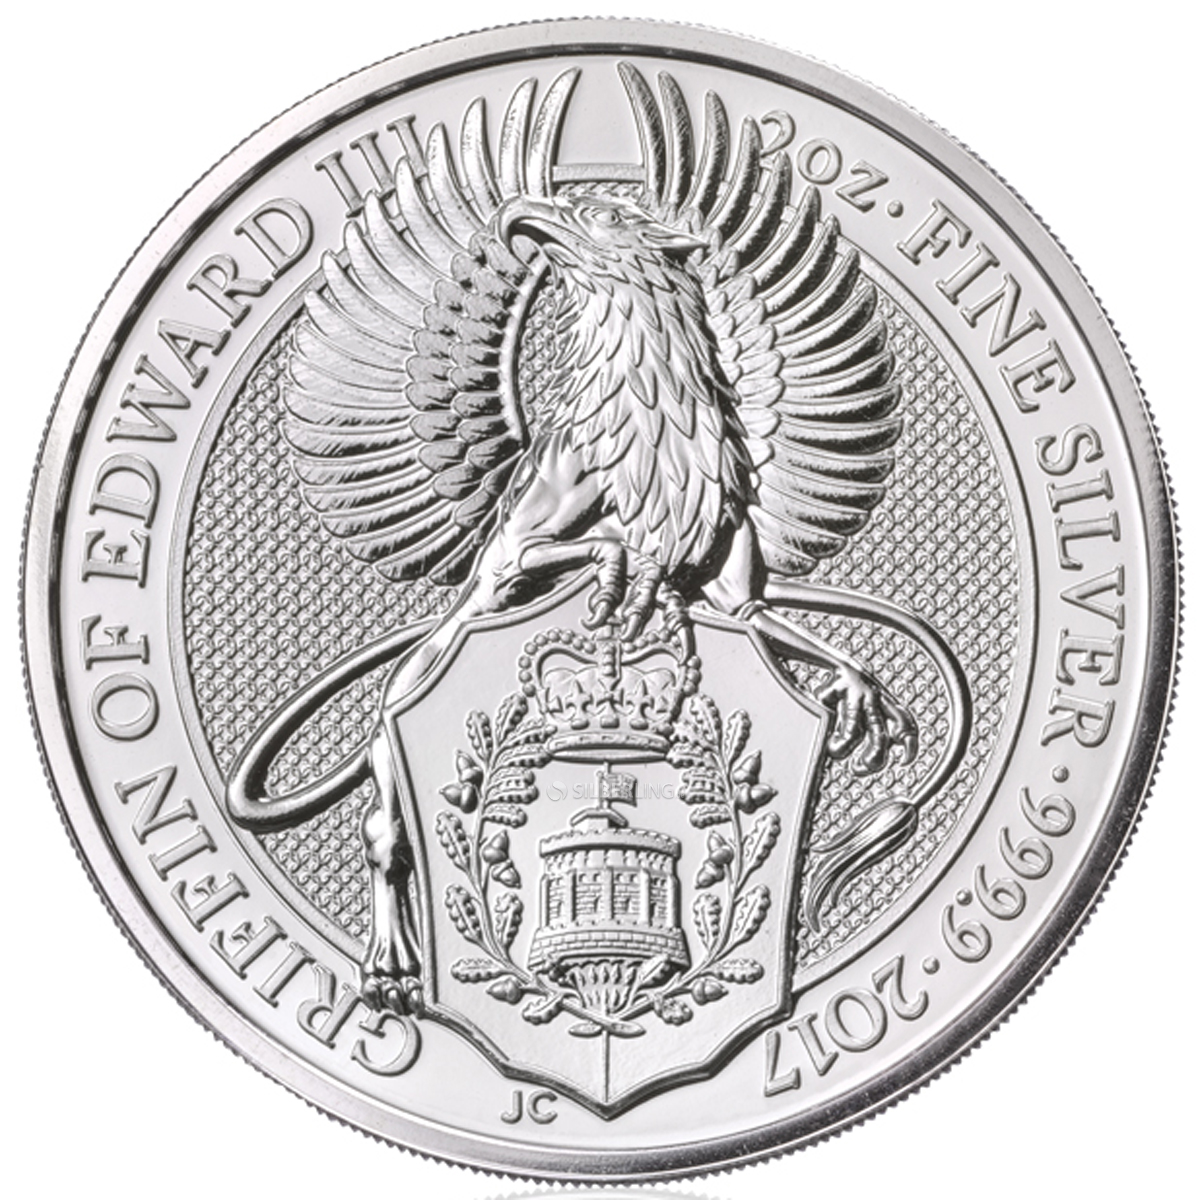 Queen/'s Beast The Griffin 2017 Britain 2 oz Silver Bullion Coin in Capsule